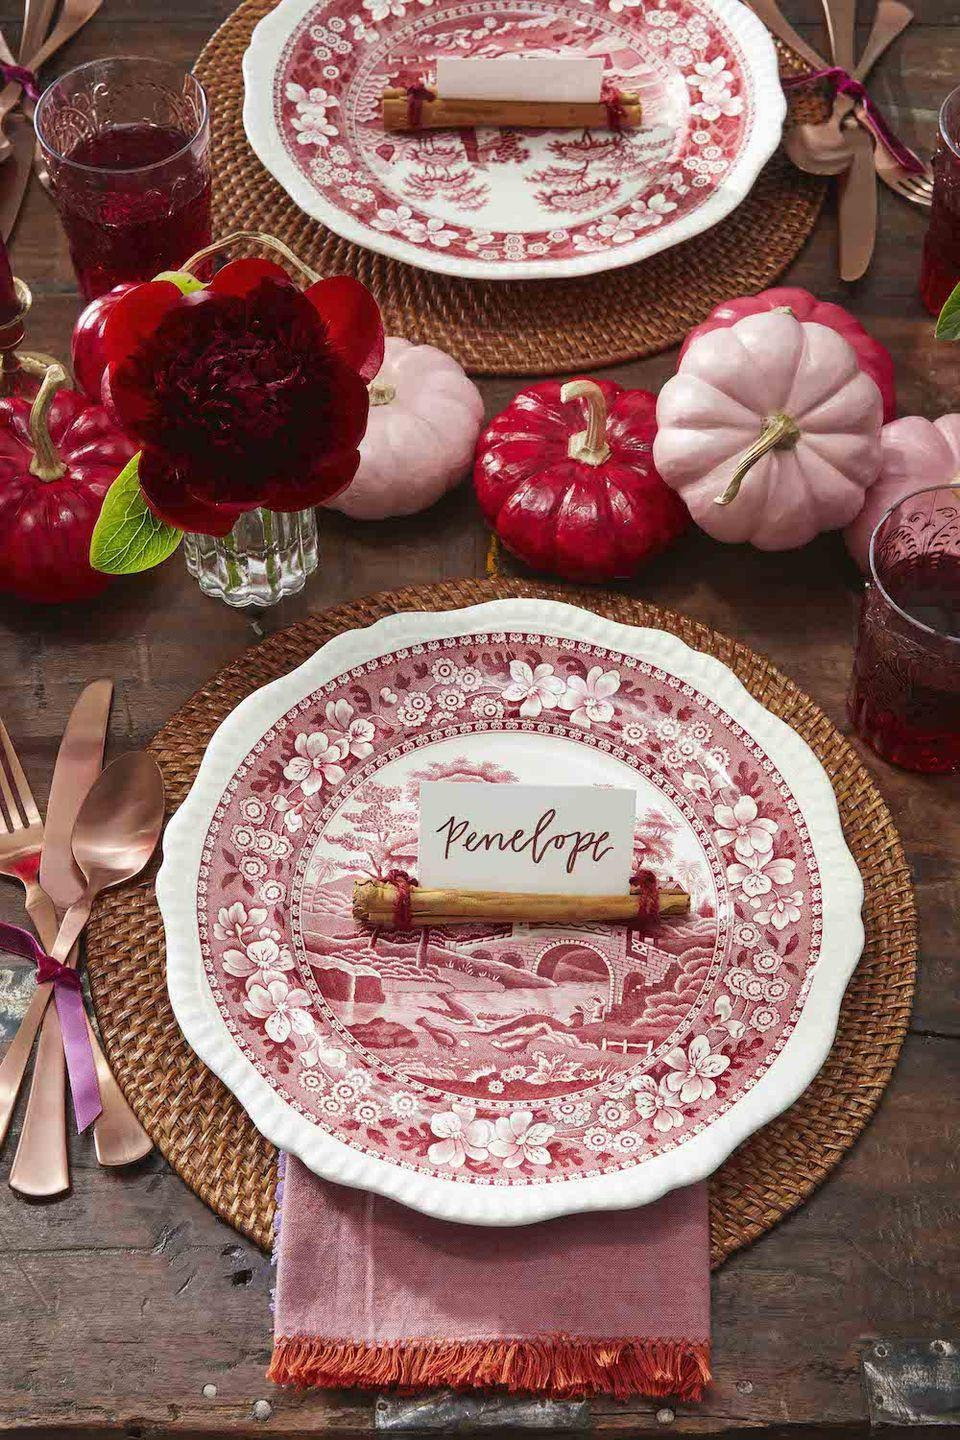 """<p>Create an unexpected color story with painted pumpkins that match your dinnerware and table linens. This magenta, red, and pink color combo makes for a perfectly feminine fall vibe.</p><p><a class=""""link rapid-noclick-resp"""" href=""""https://www.amazon.com/Acrylic-Acrylia-Supplies-Beginners-Painting/dp/B07VSH224W/?tag=syn-yahoo-20&ascsubtag=%5Bartid%7C10050.g.3739%5Bsrc%7Cyahoo-us"""" rel=""""nofollow noopener"""" target=""""_blank"""" data-ylk=""""slk:SHOP ACRYLIC PAINT"""">SHOP ACRYLIC PAINT</a></p>"""